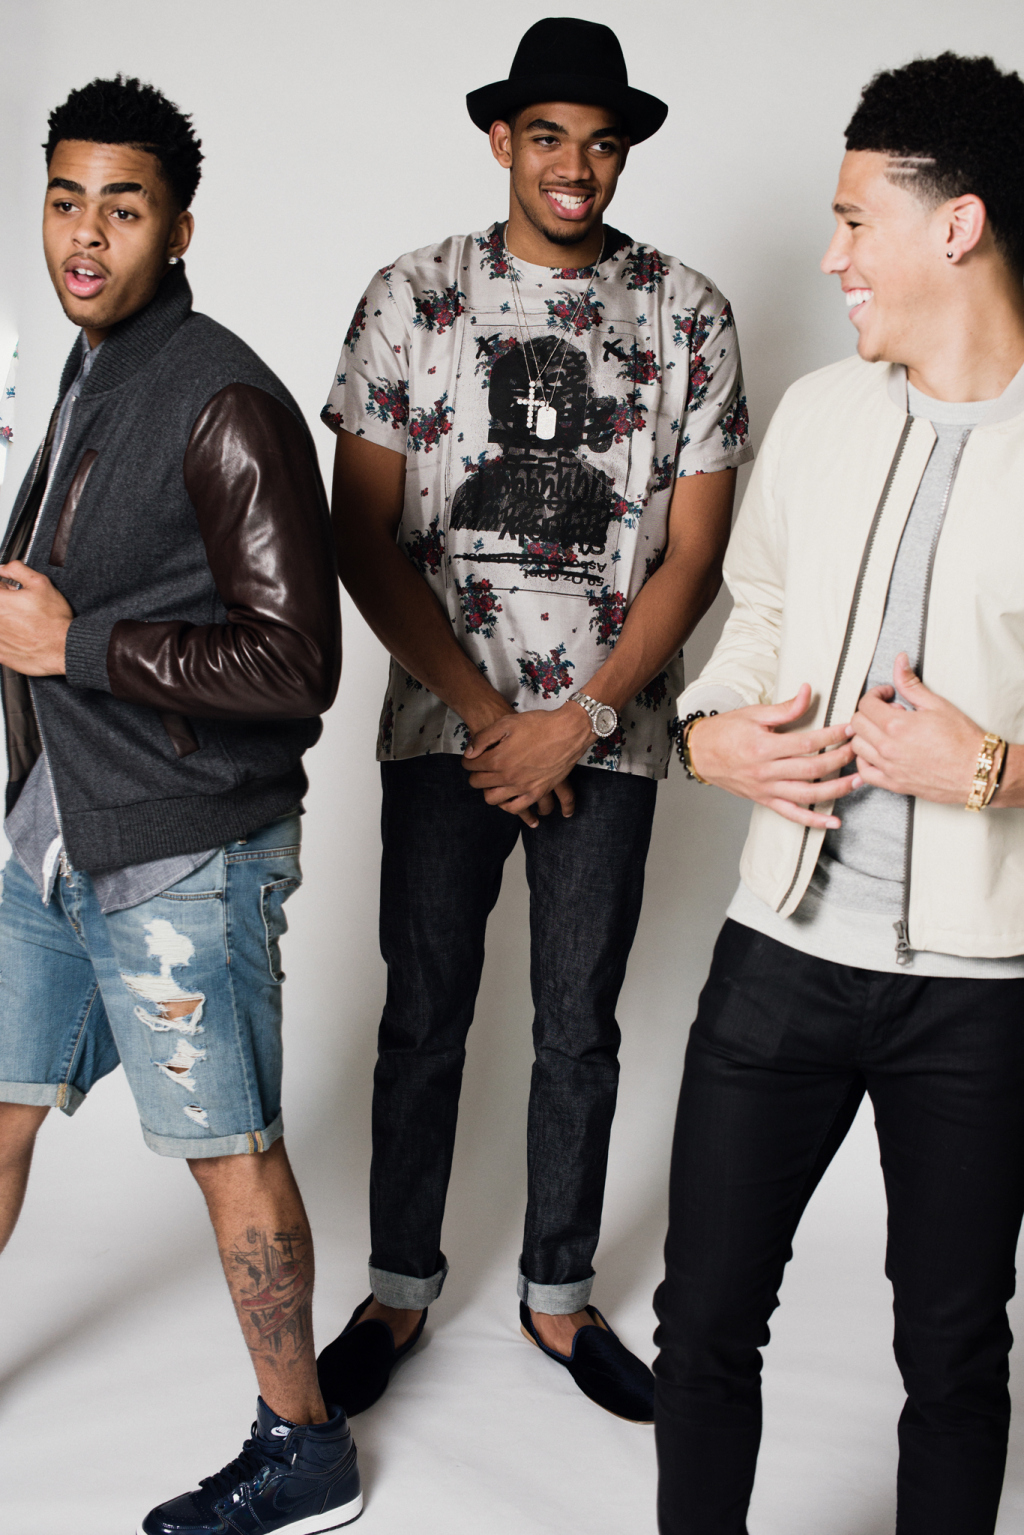 Nba Rookies Karl Anthony Towns D Angelo Russell Devin Booker For Wwd Donovan Moore Fashion Book